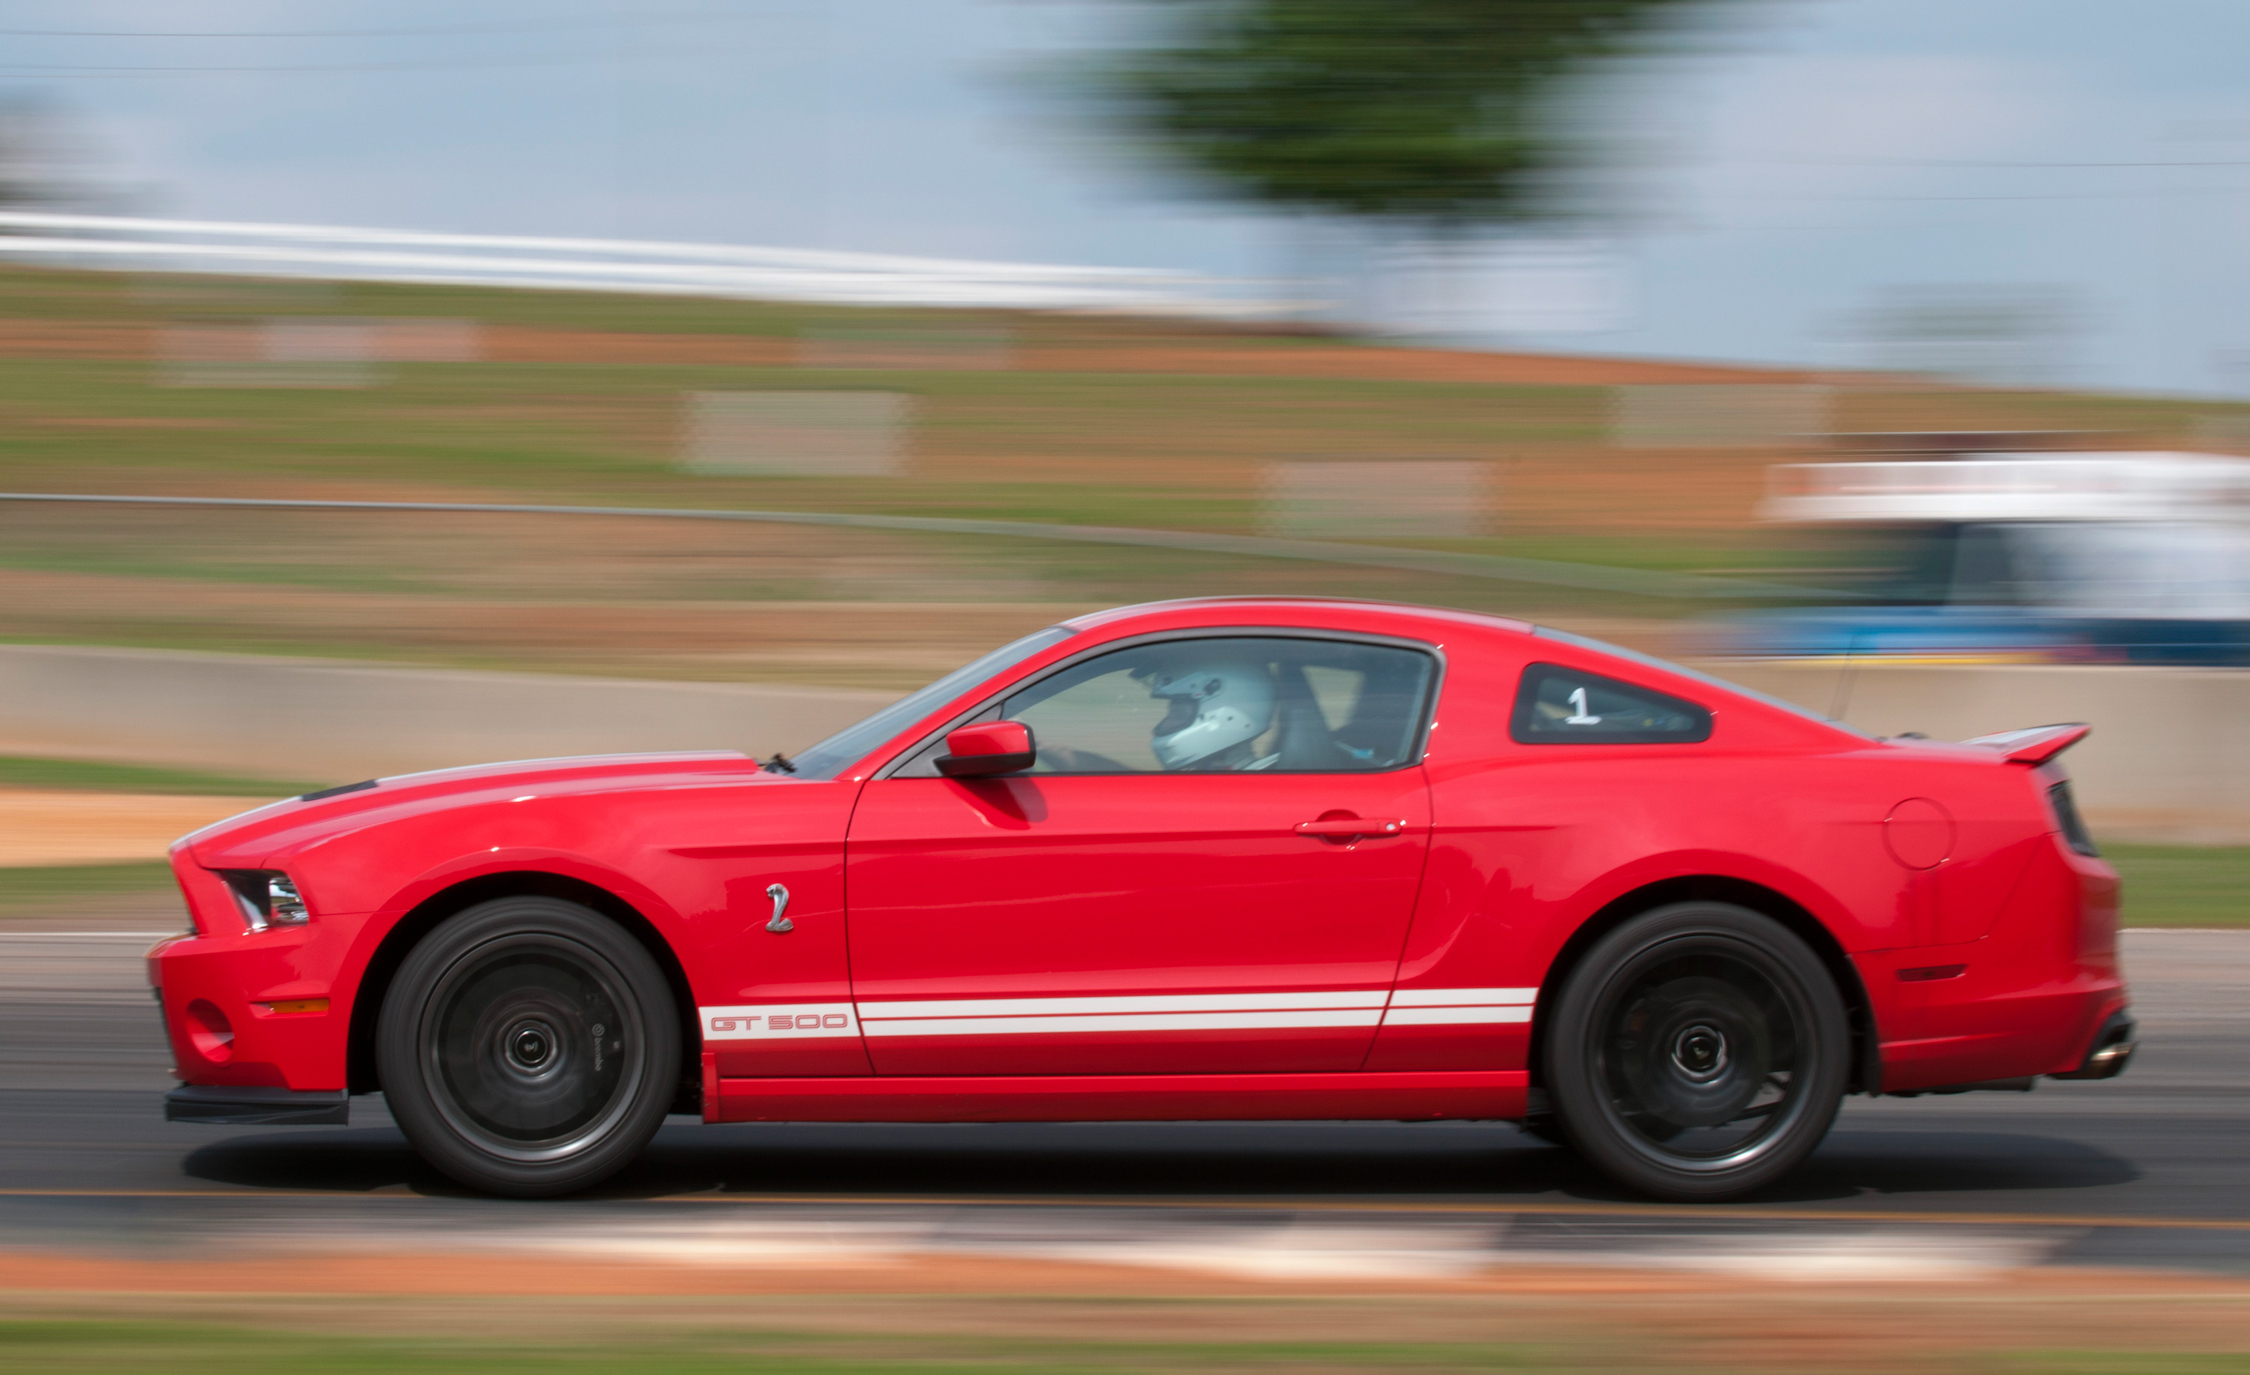 2013 Ford Mustang Shelby GT500 Red Test Drive (Photo 31 of 47)